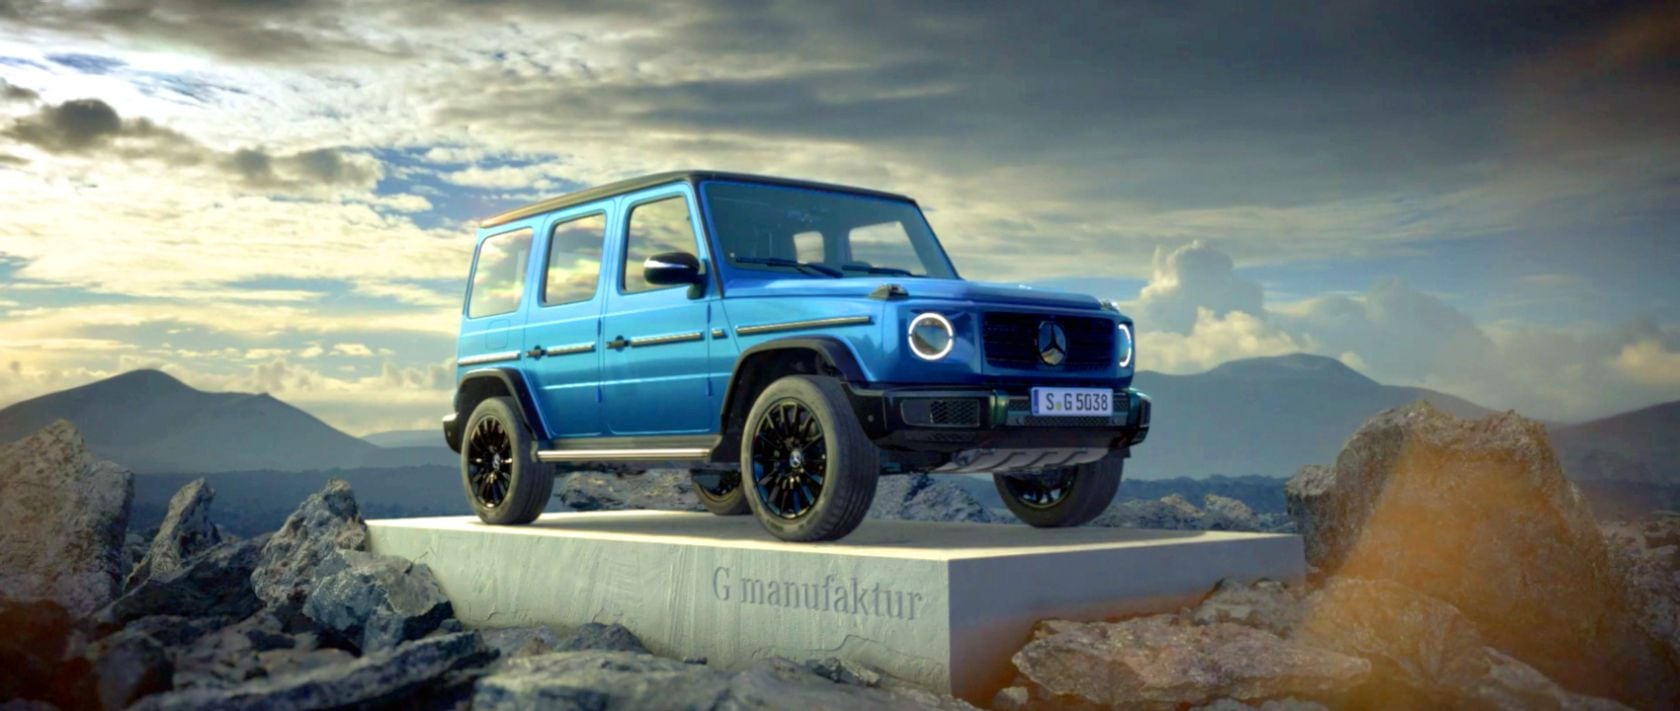 Die 2019er Mercedes-Benz G-Klasse (W 463) in Brilliantblau.